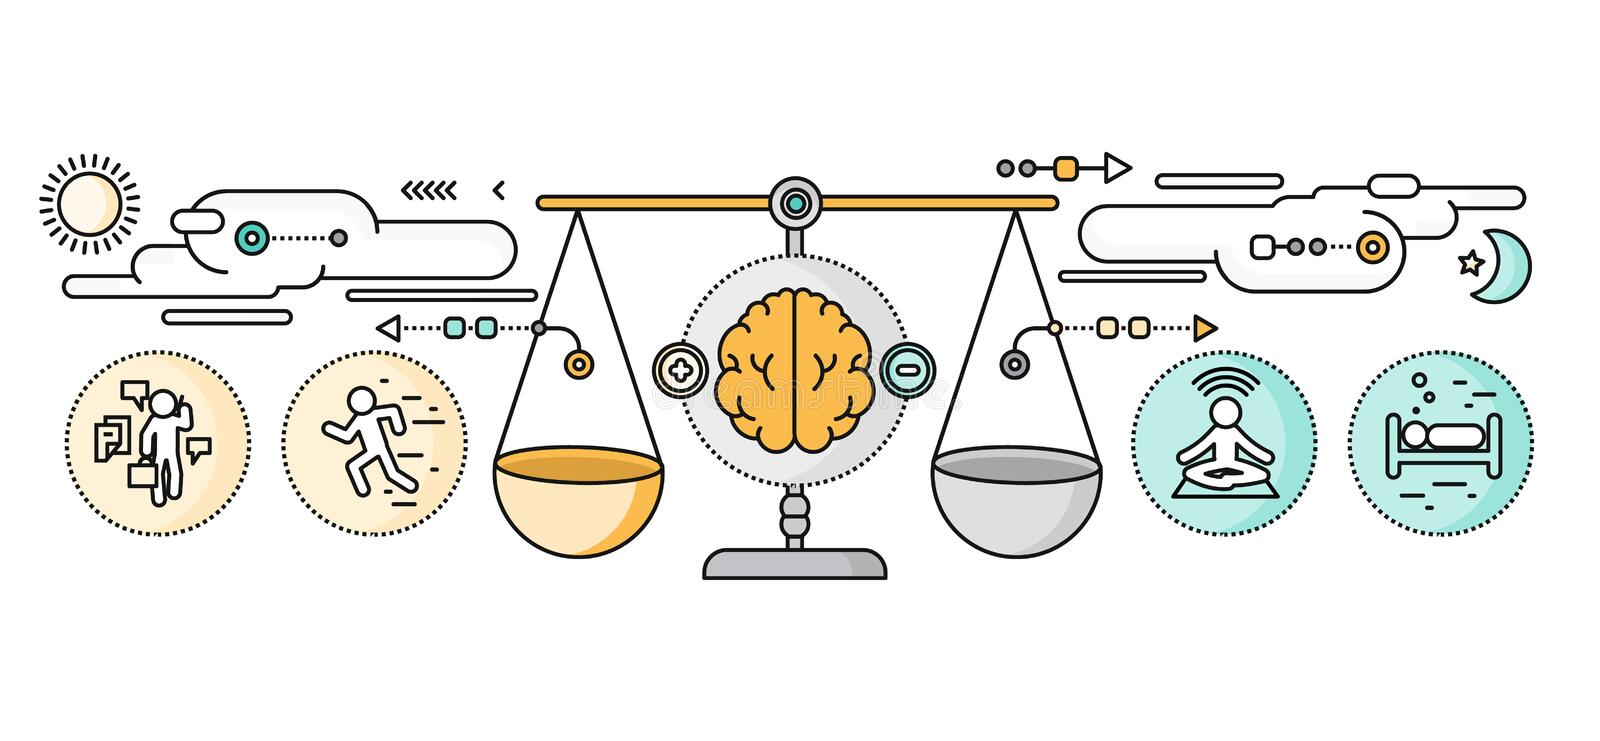 Diagnose von Brain Psychology Flat Design vektor abbildung